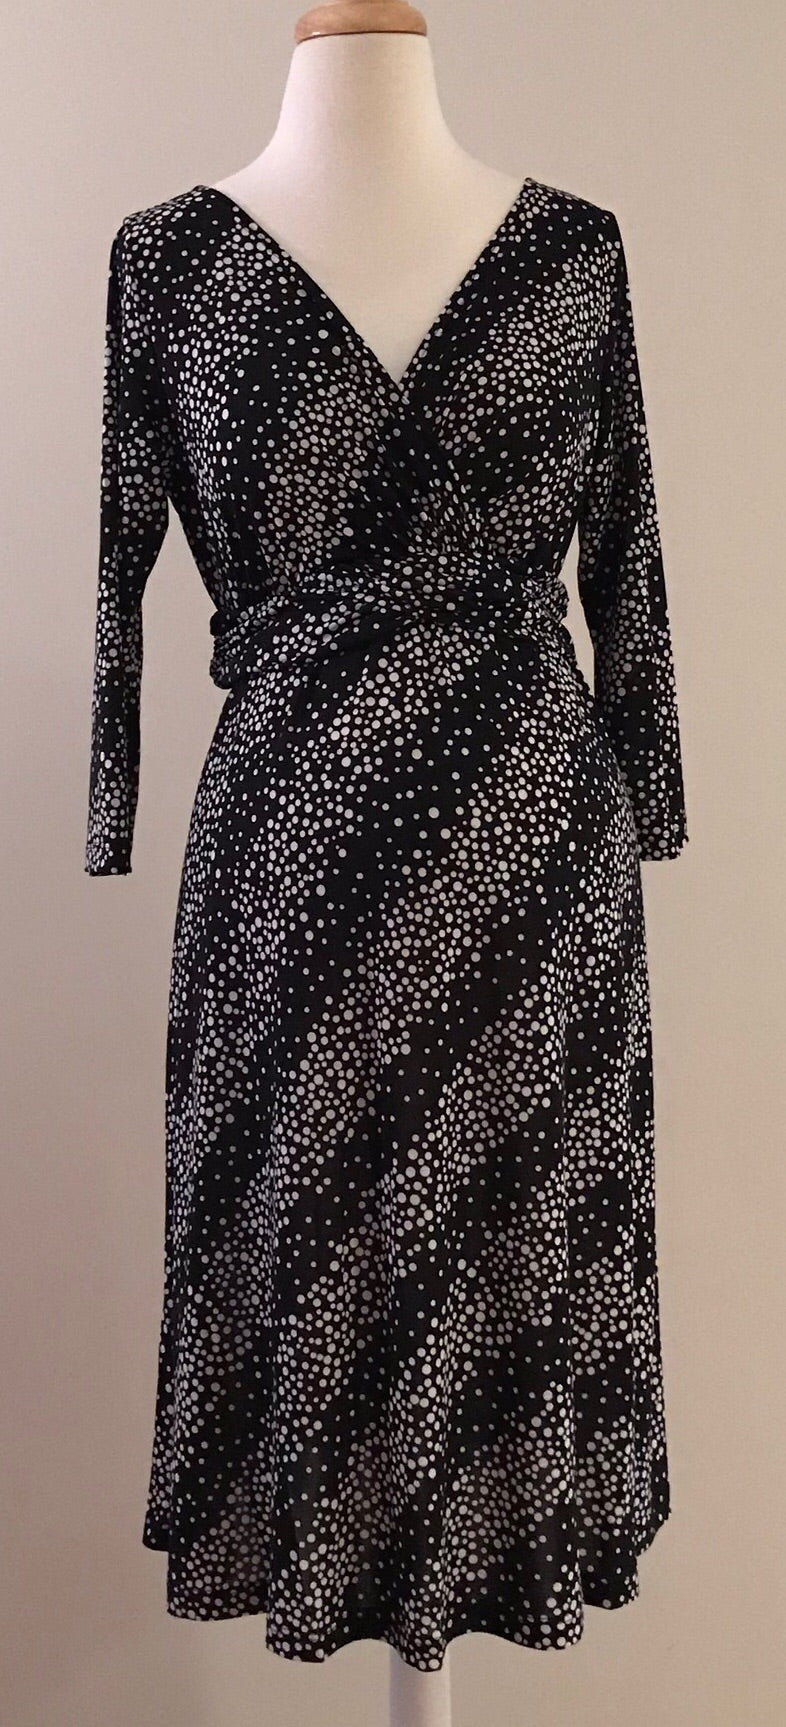 Long Sleeved Polka Dot Nursing Dress